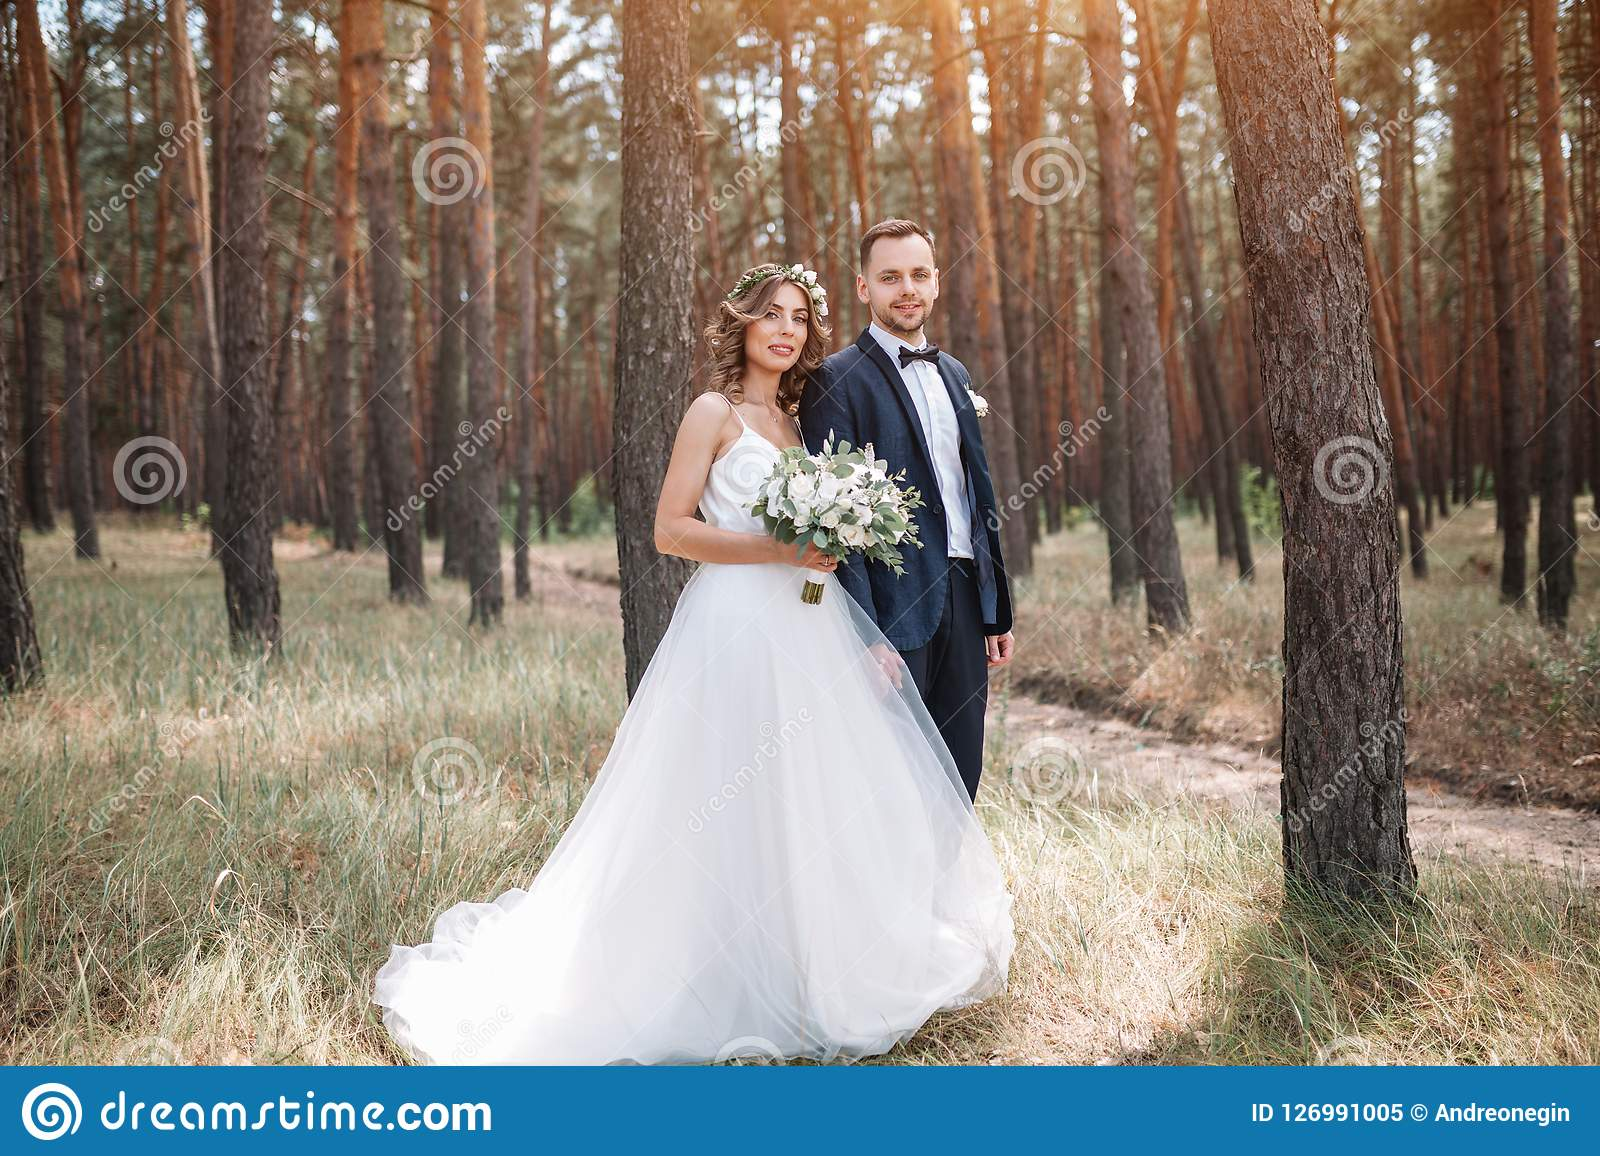 Bride And Groom At Wedding Day Walking Outdoors On Summer